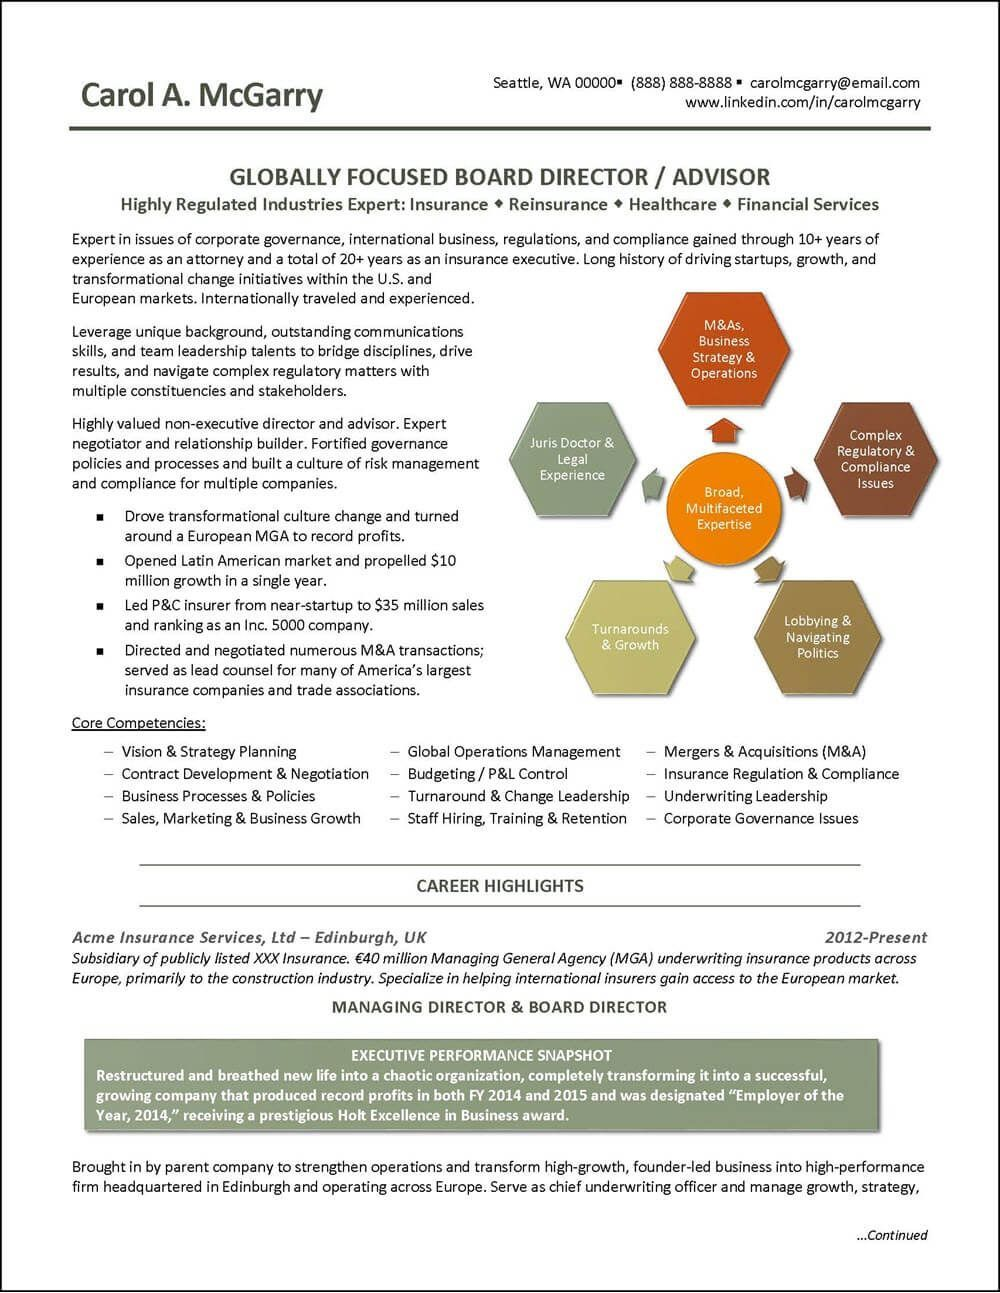 National Award Winning Executive Resume Examples Executive Cover Letter Examples Infographic Resume Resume Examples Executive Resume Resume Writing Examples